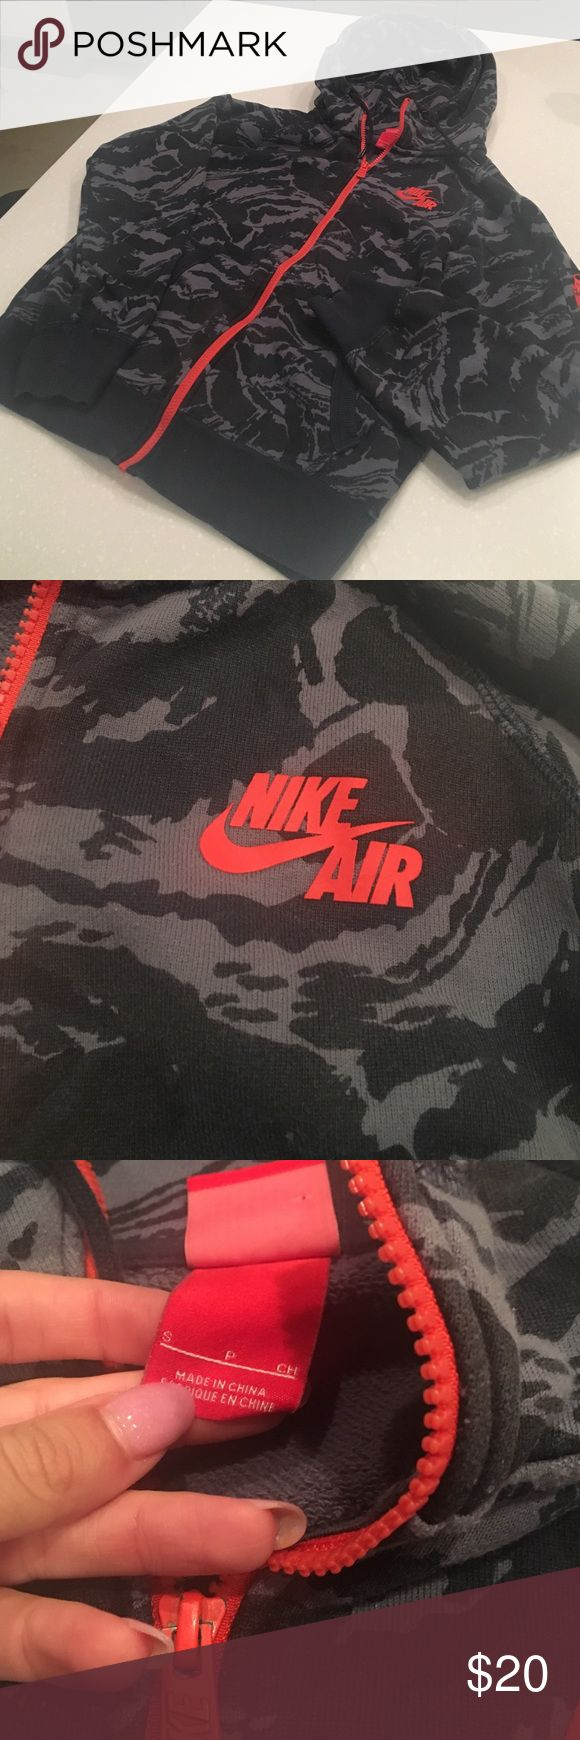 Men's Nike Air jacket Black and grey camo Nike air zip up jacket with red zipper. Men's apparel Nike Jackets & Coats